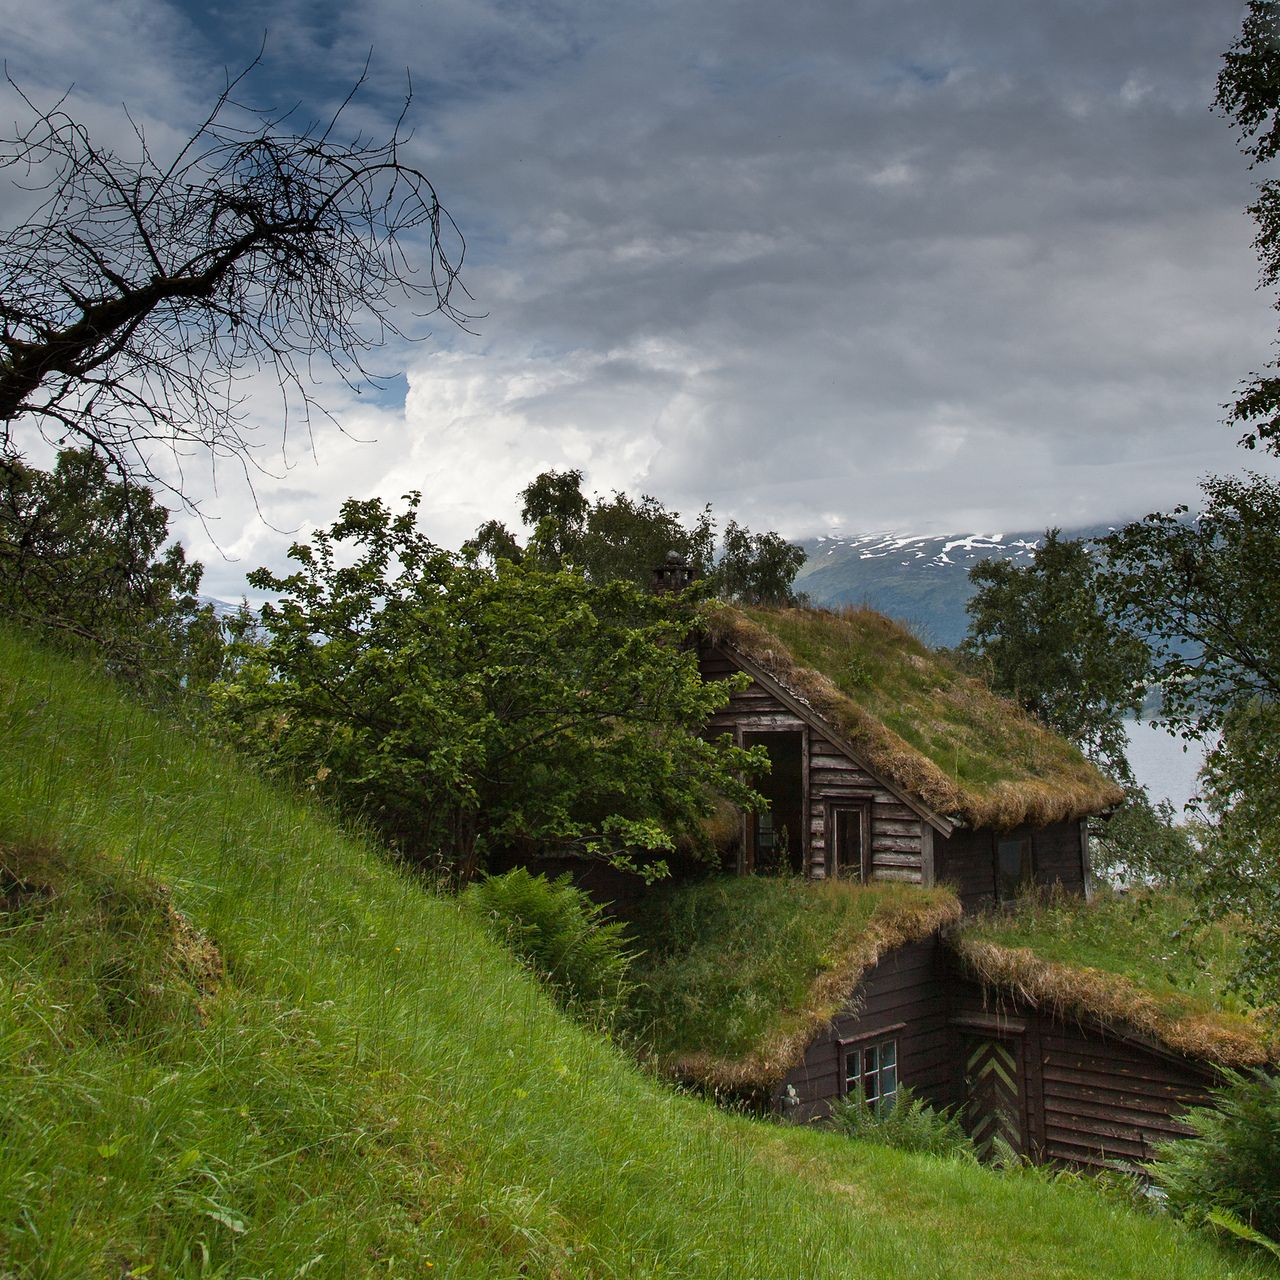 Earth Berm Home Talk About Disappearing Into The Hillside A Little Something For Wayne This Is His Kind Of Dream Norway Natural Building Earth Sheltered